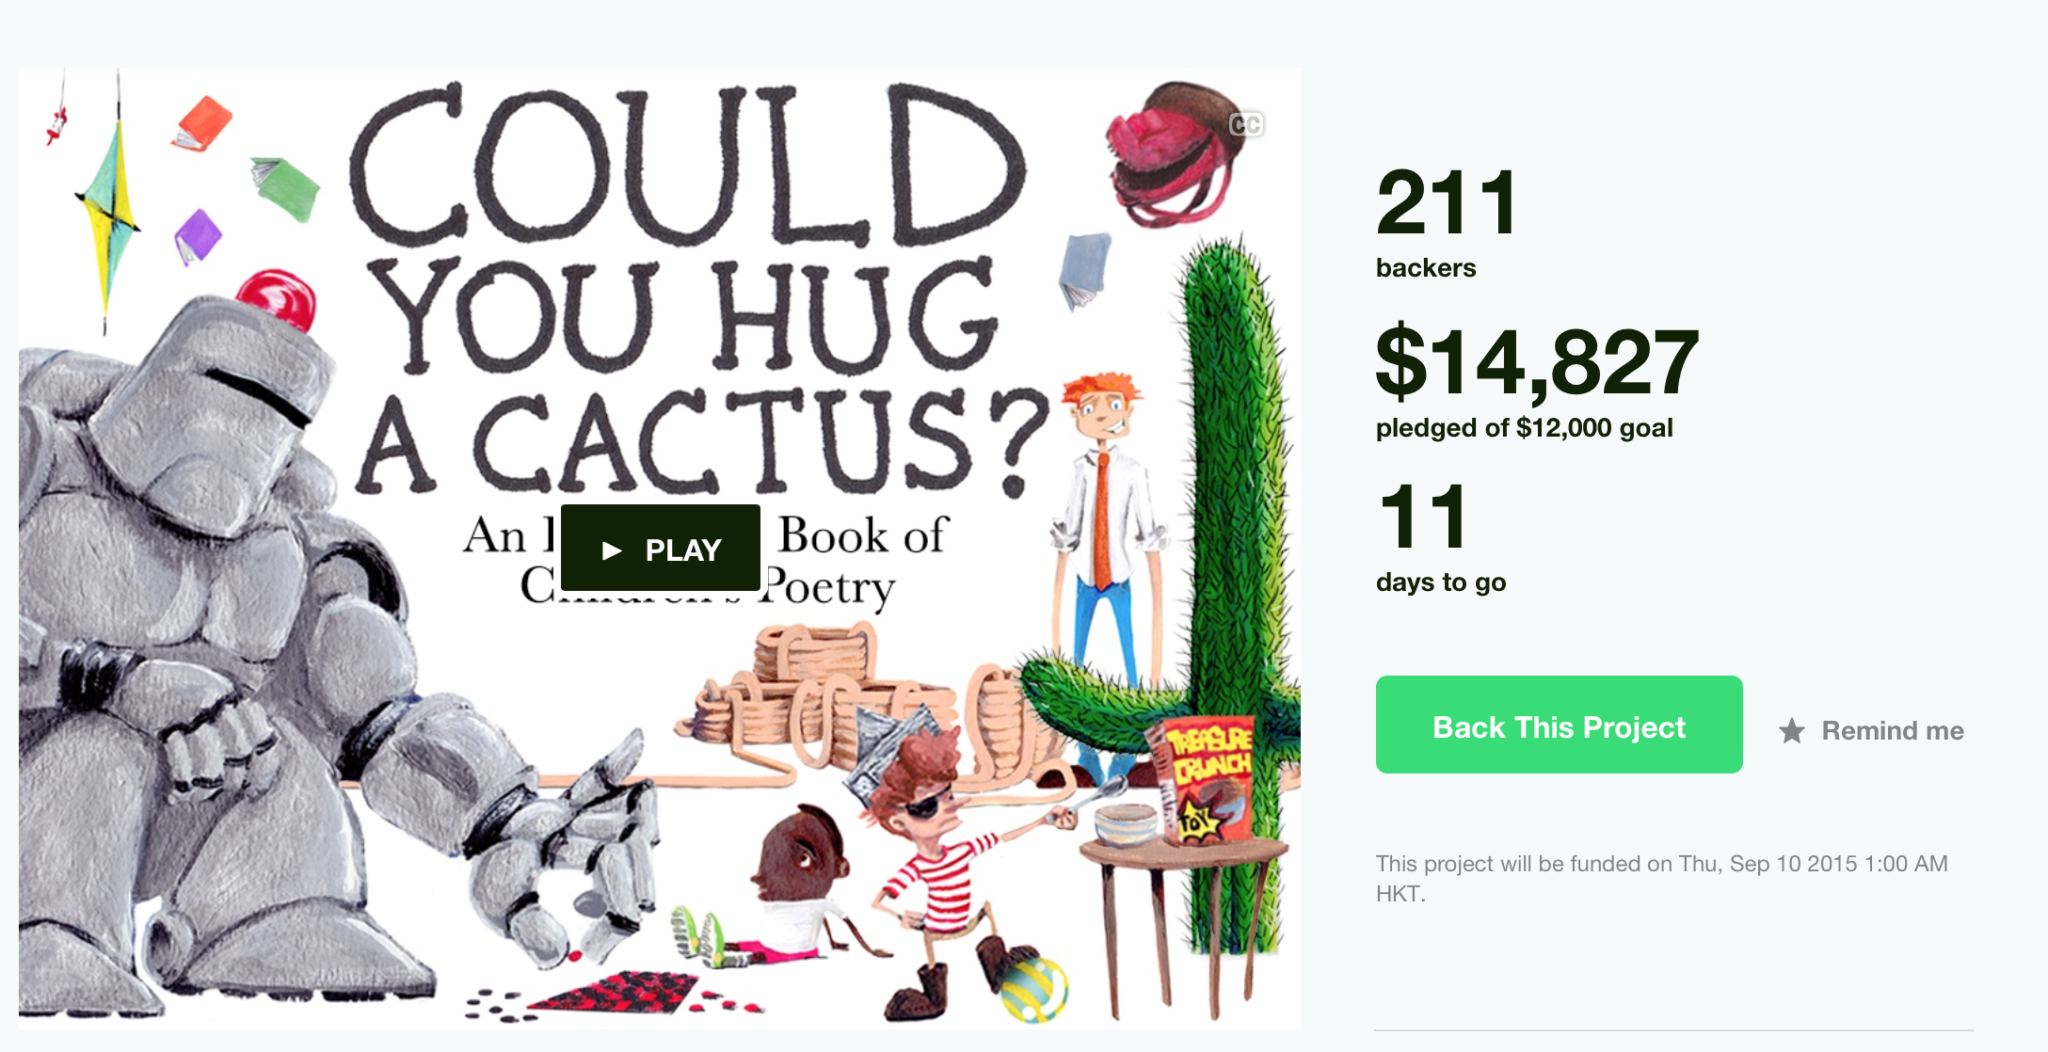 Could You Hug a Cactus Kickstarter